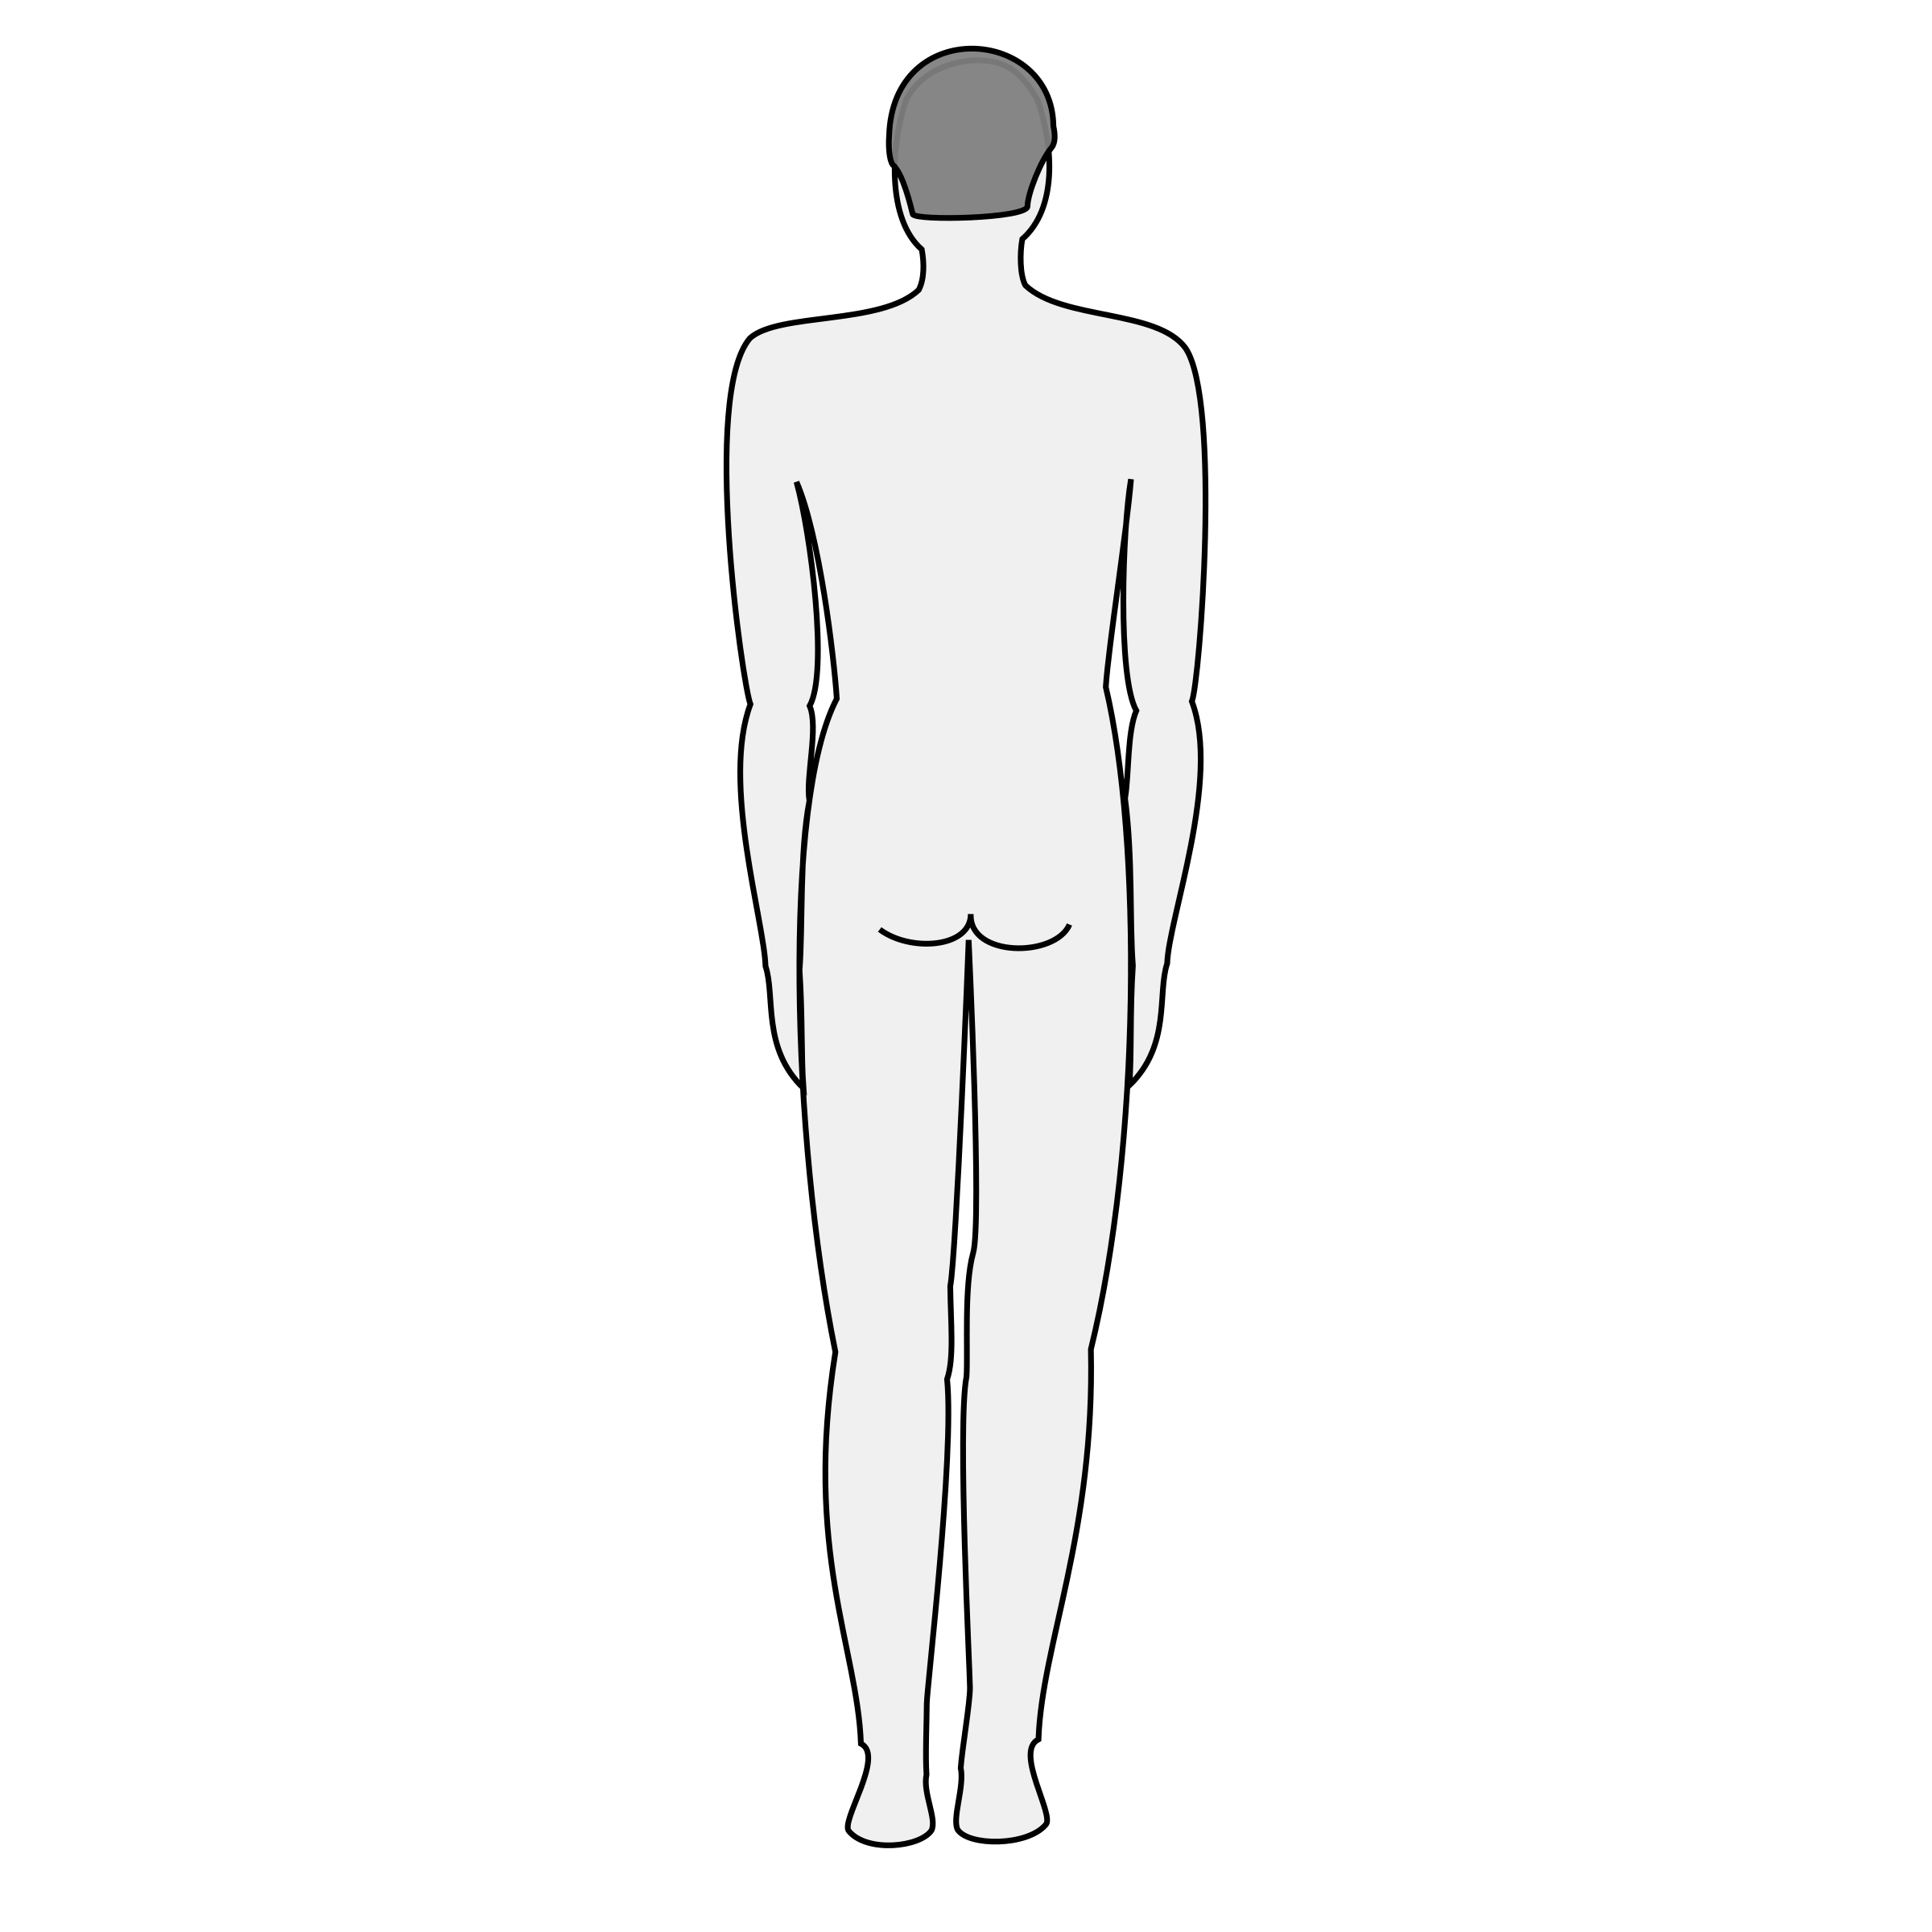 Male body silhouette - back by nicubunu